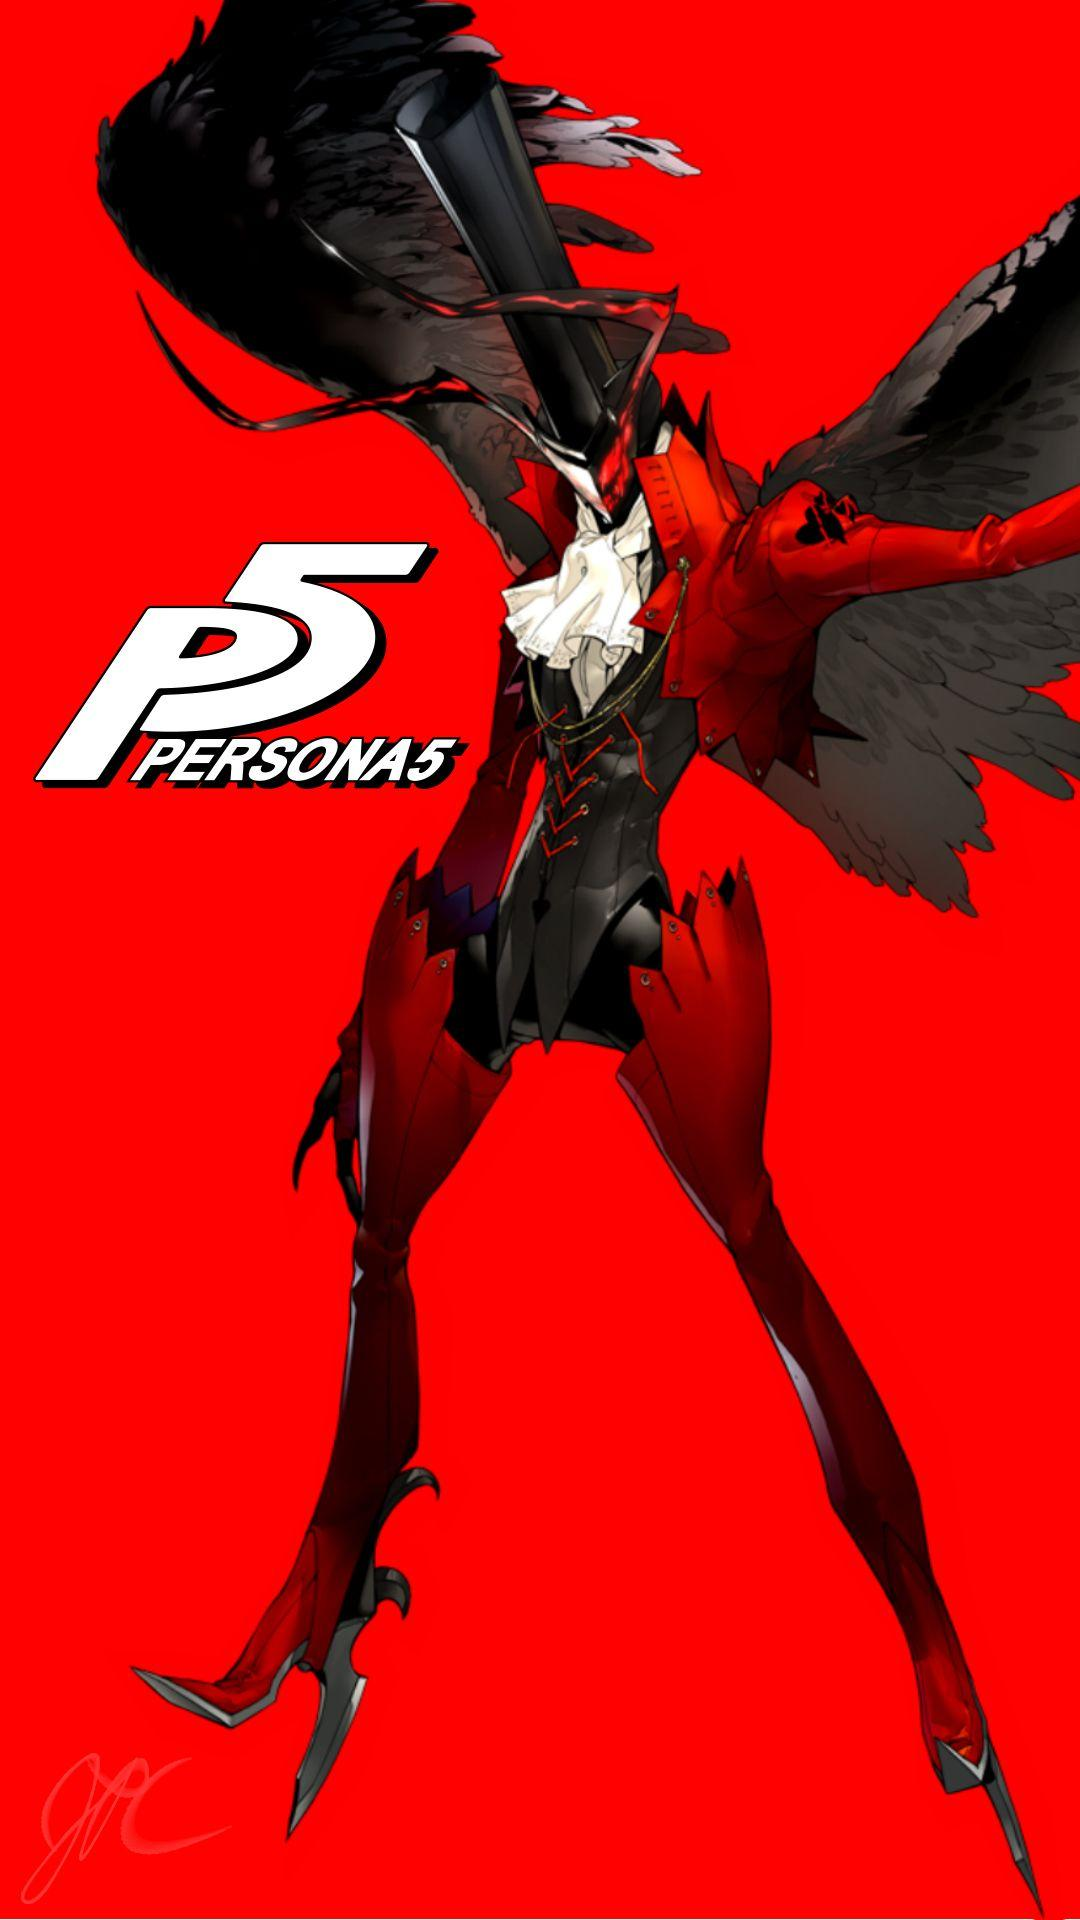 Persona 5 Wallpapers - Wallpaper Cave